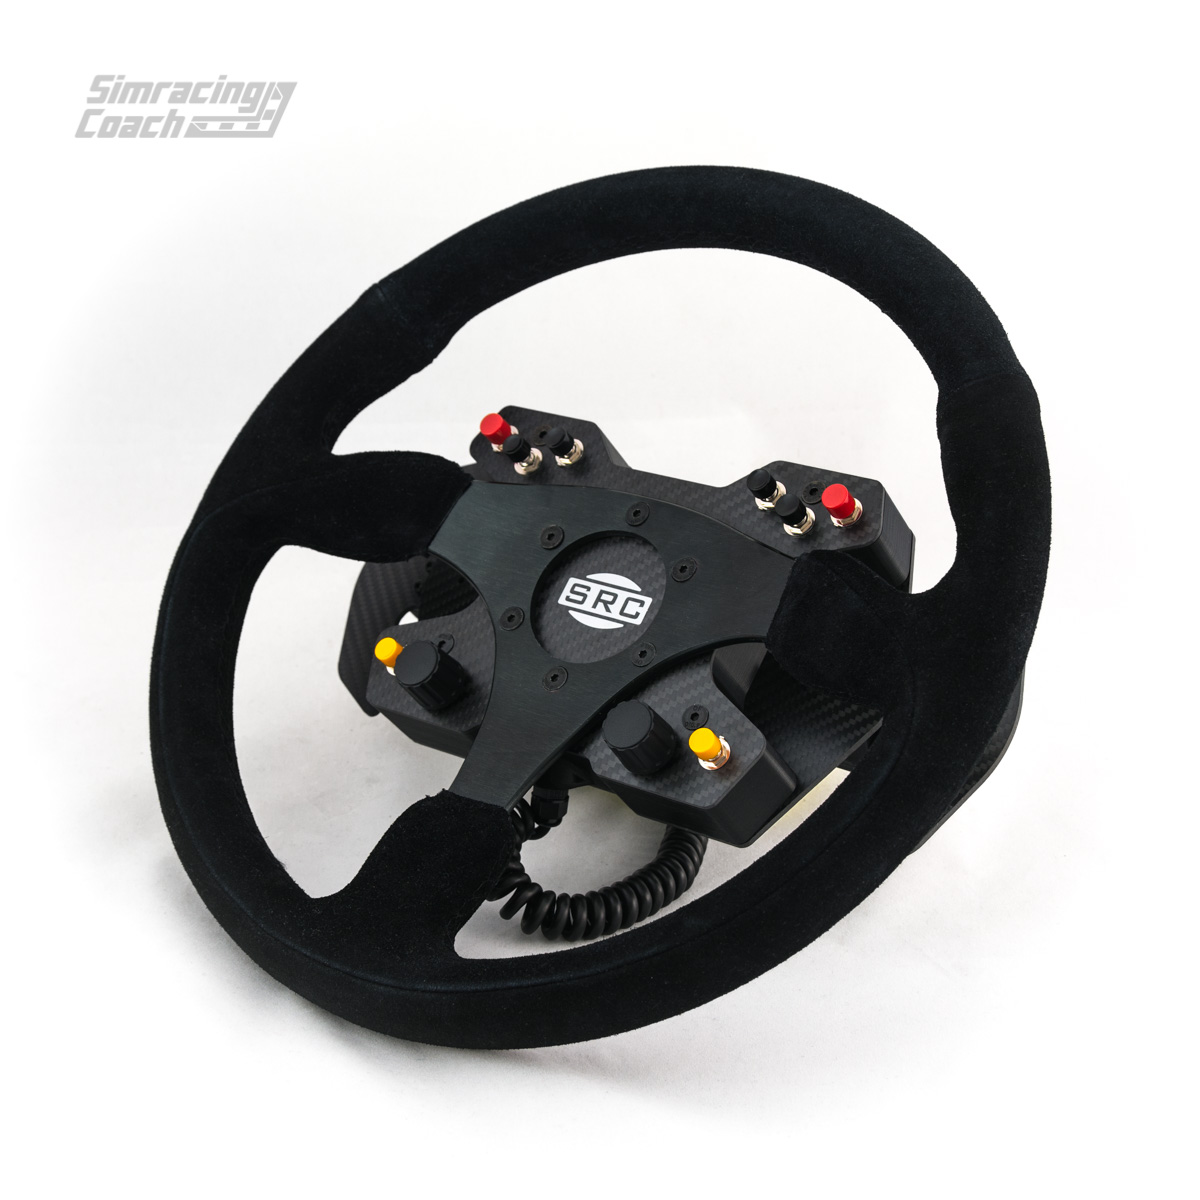 Rgr Thwkit Mod moreover Src Rally moreover N Yxothiowy Mwm Ngm Yze Zmy Zwjhywuymwvmmwy moreover Thrustmaster T Rs X besides Post. on thrustmaster adapter